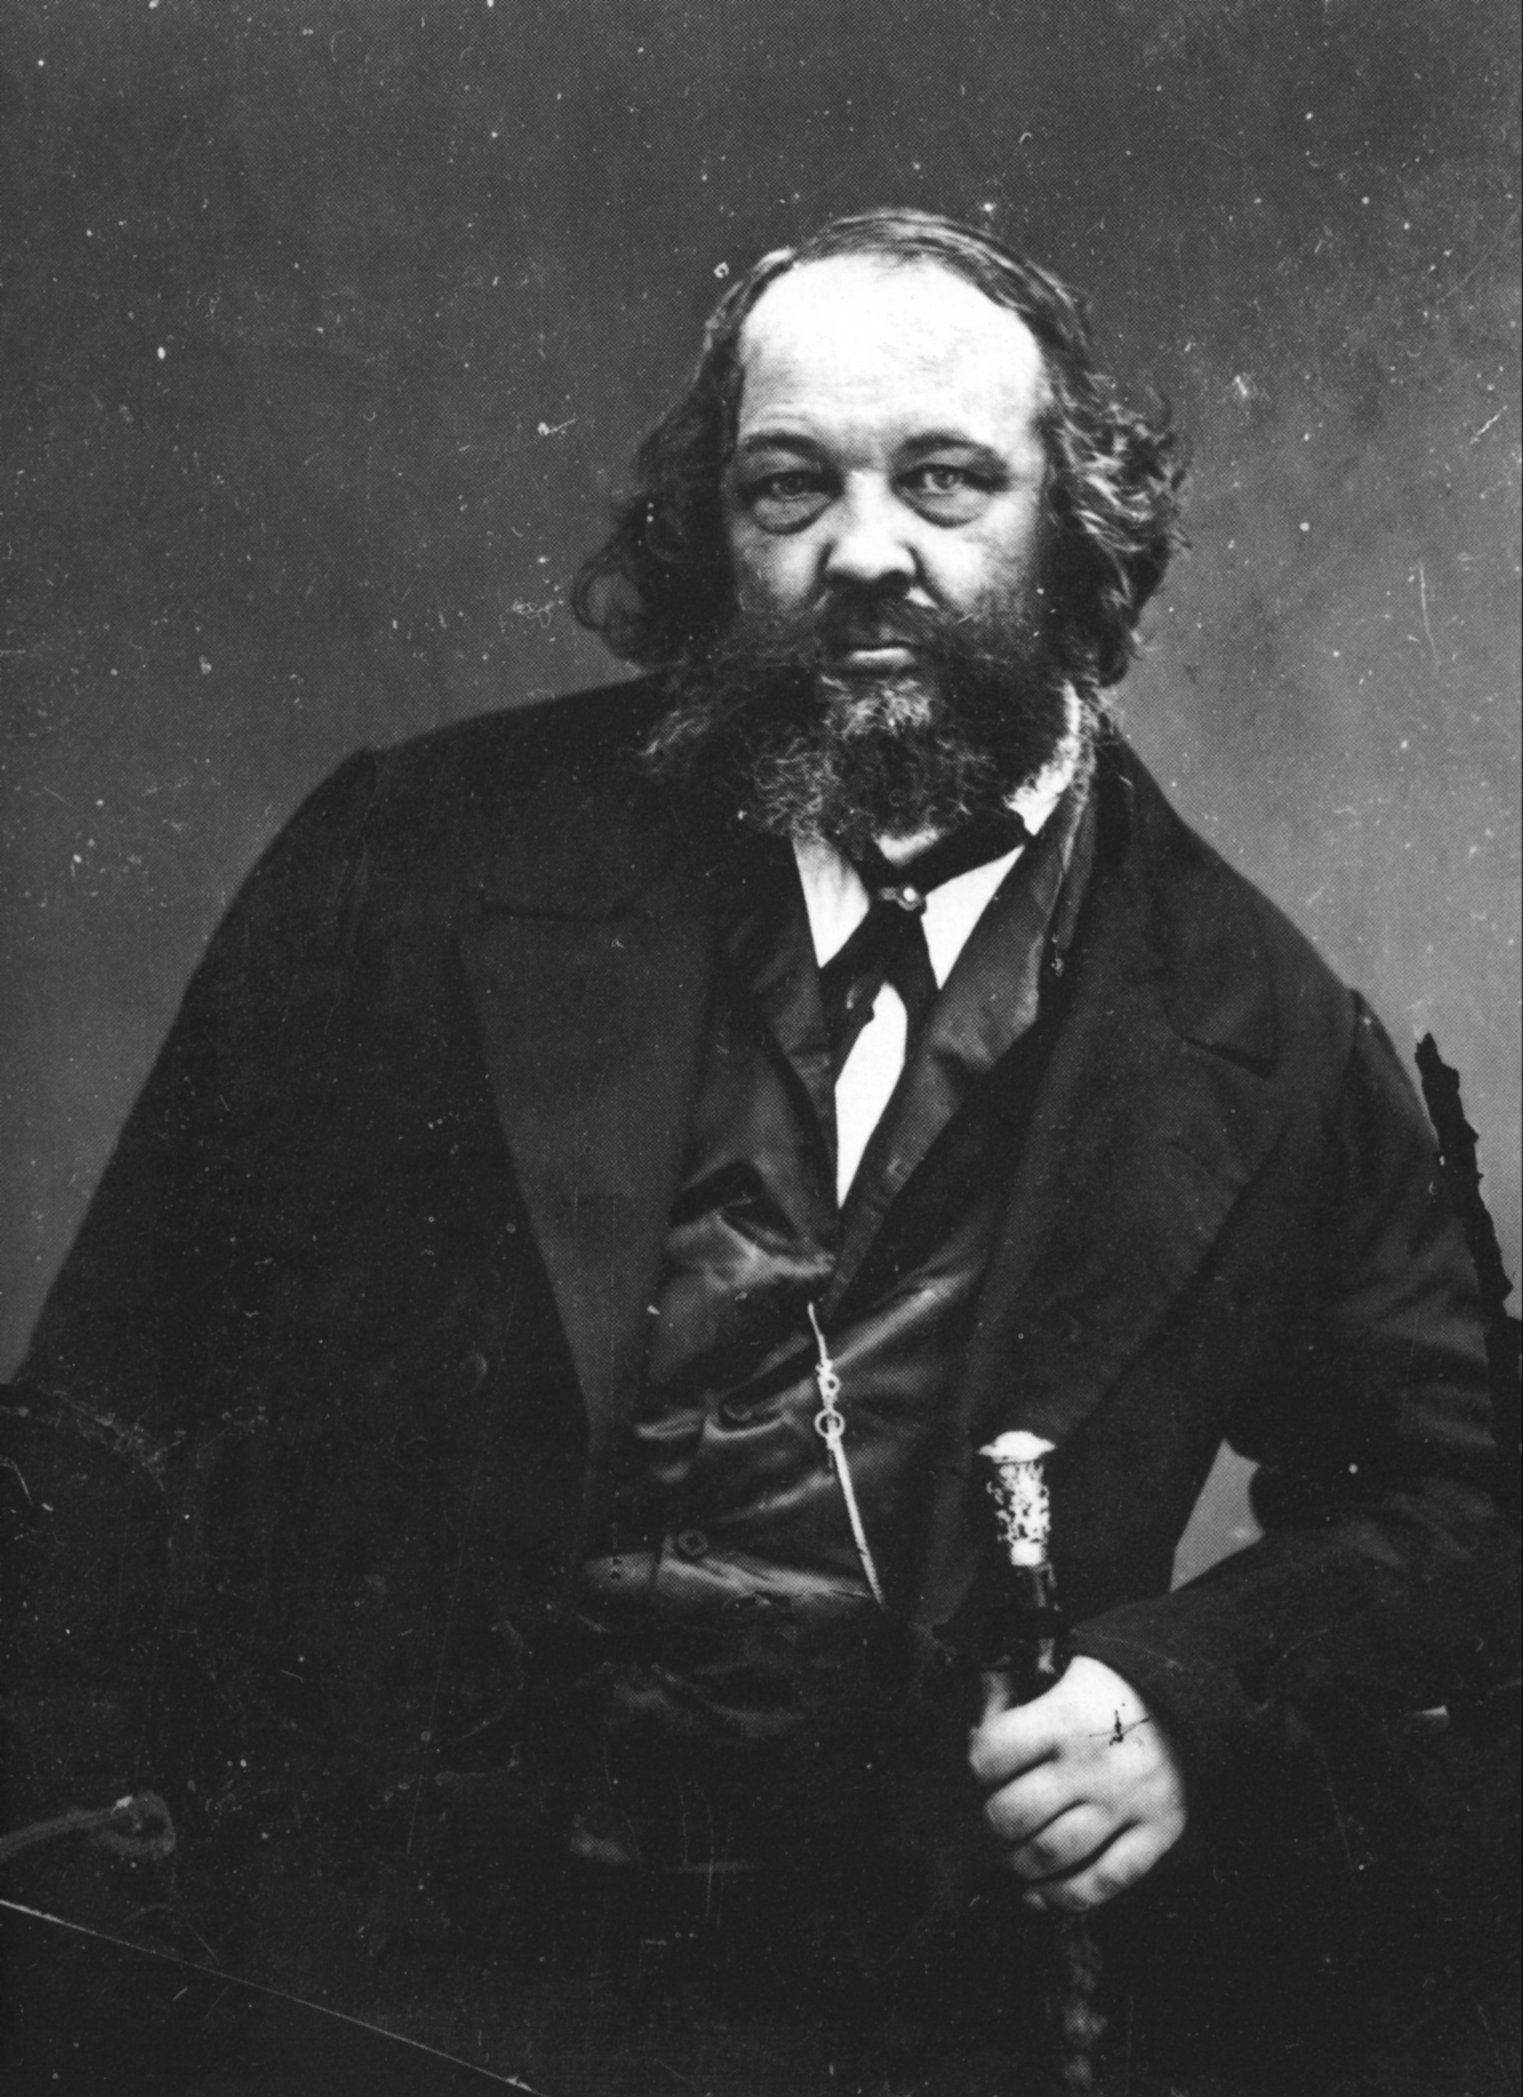 michail bakunin Photographer: Nadar [Public domain], via Wikimedia Commons http://commons.wikimedia.org/wiki/File%3AF%C3%A9lix_Nadar_1820-1910_portraits_Makhail_Bakounine.jpg